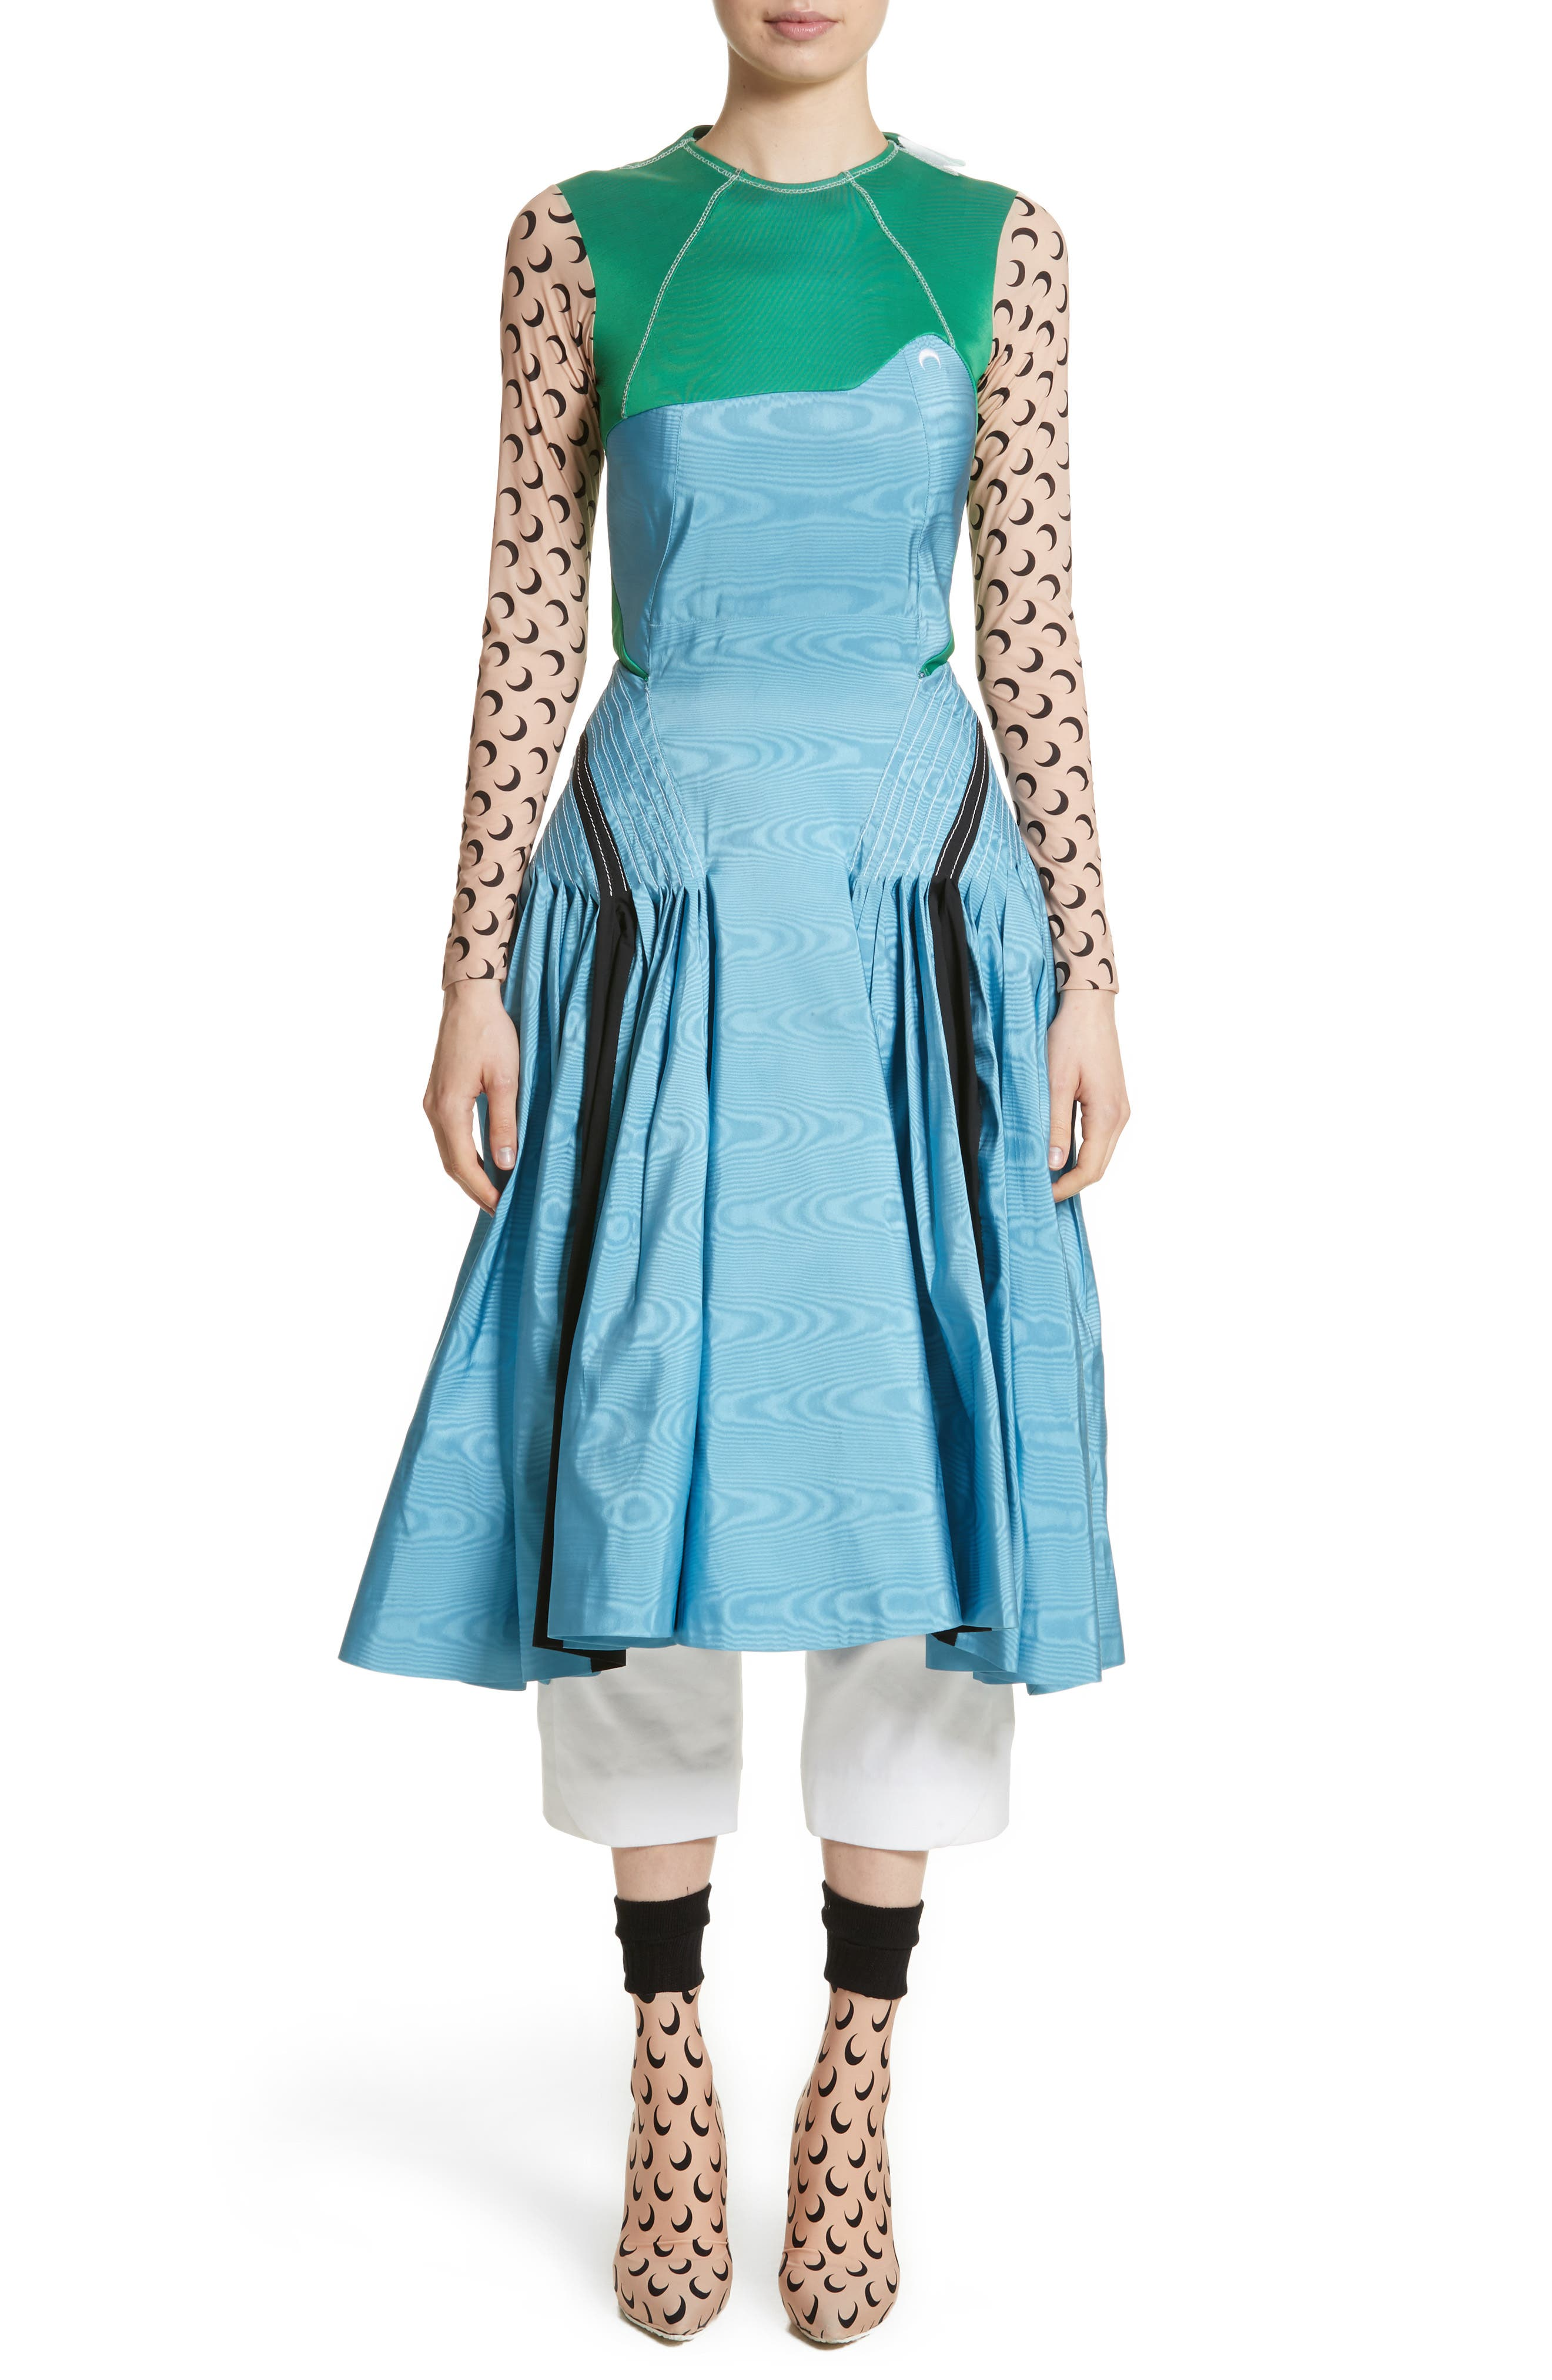 Pleated Moiré Dress,                         Main,                         color, Blue Green Black